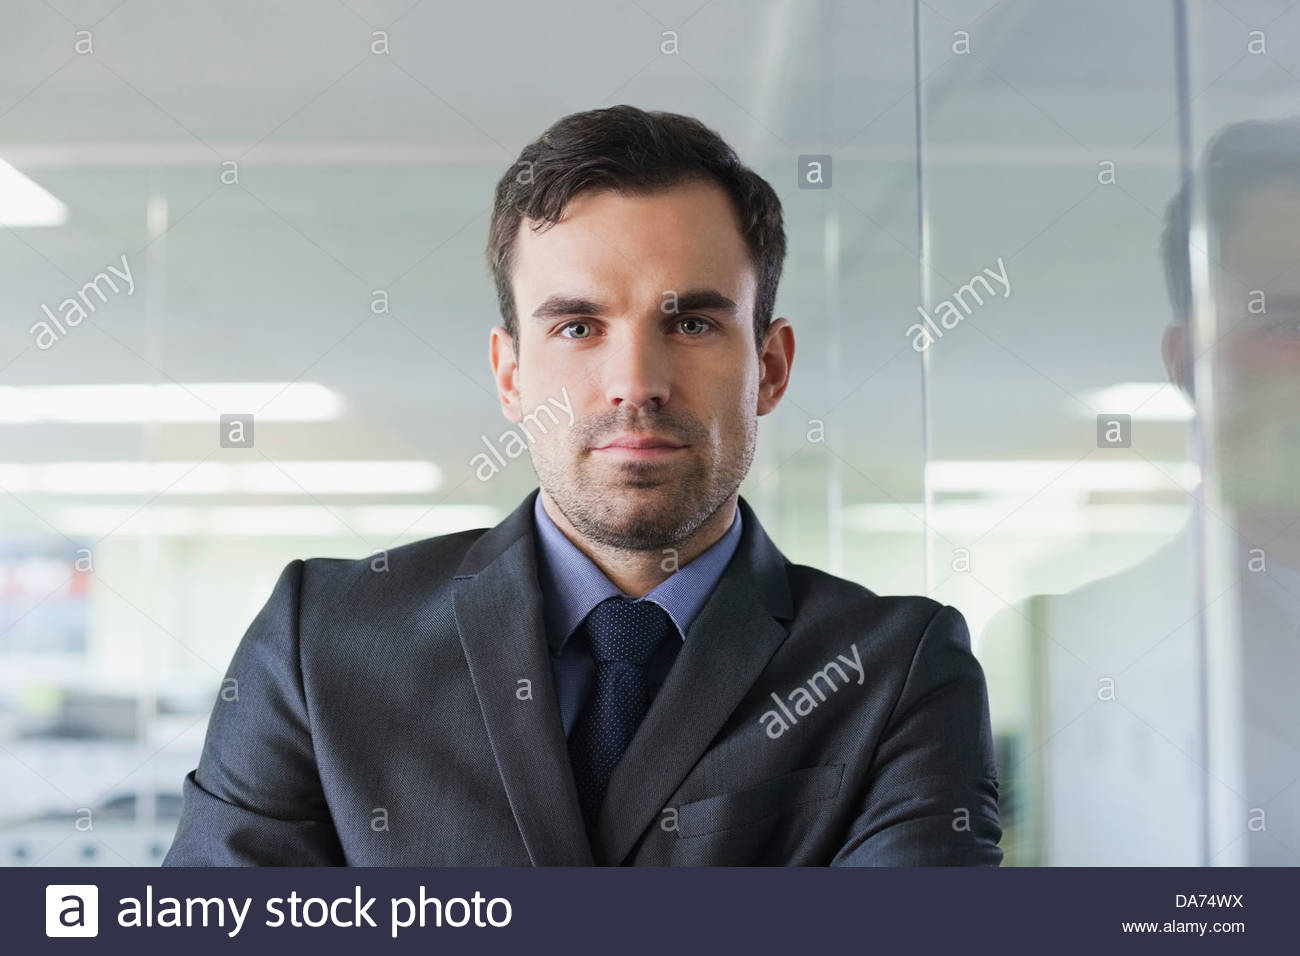 Portrait of businessman leaning on glass wall in office - Stock Image